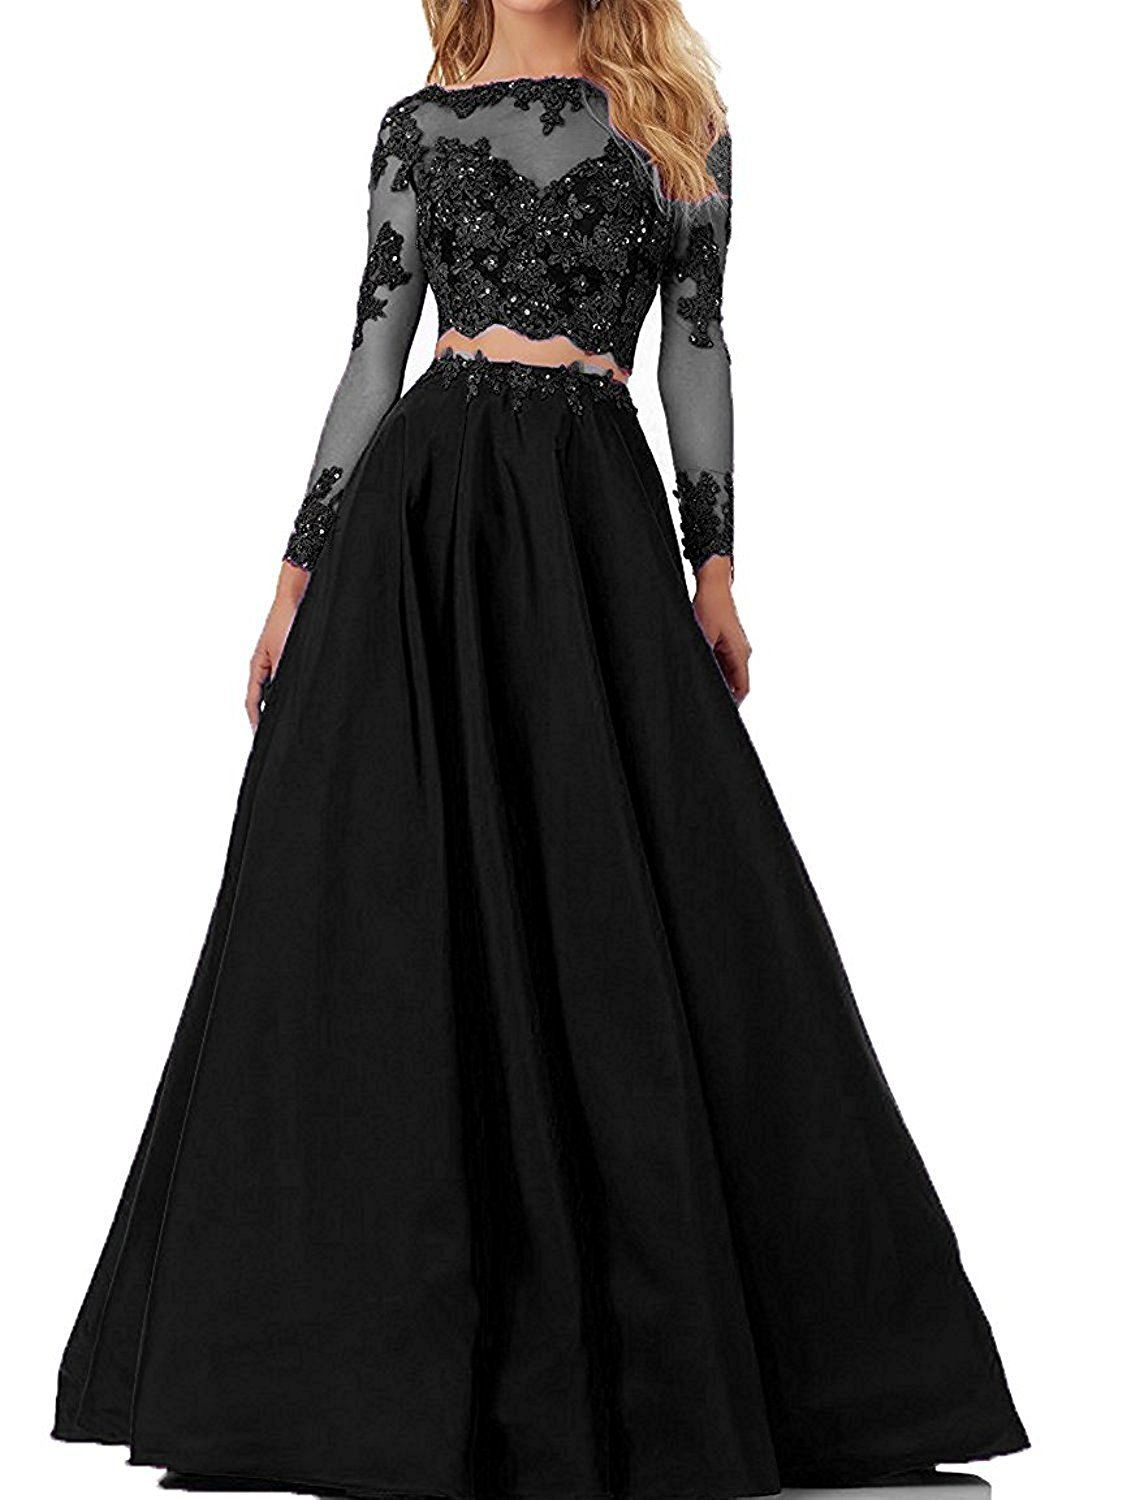 Qijunge womens two pieces prom dresses lace long sleeves evening